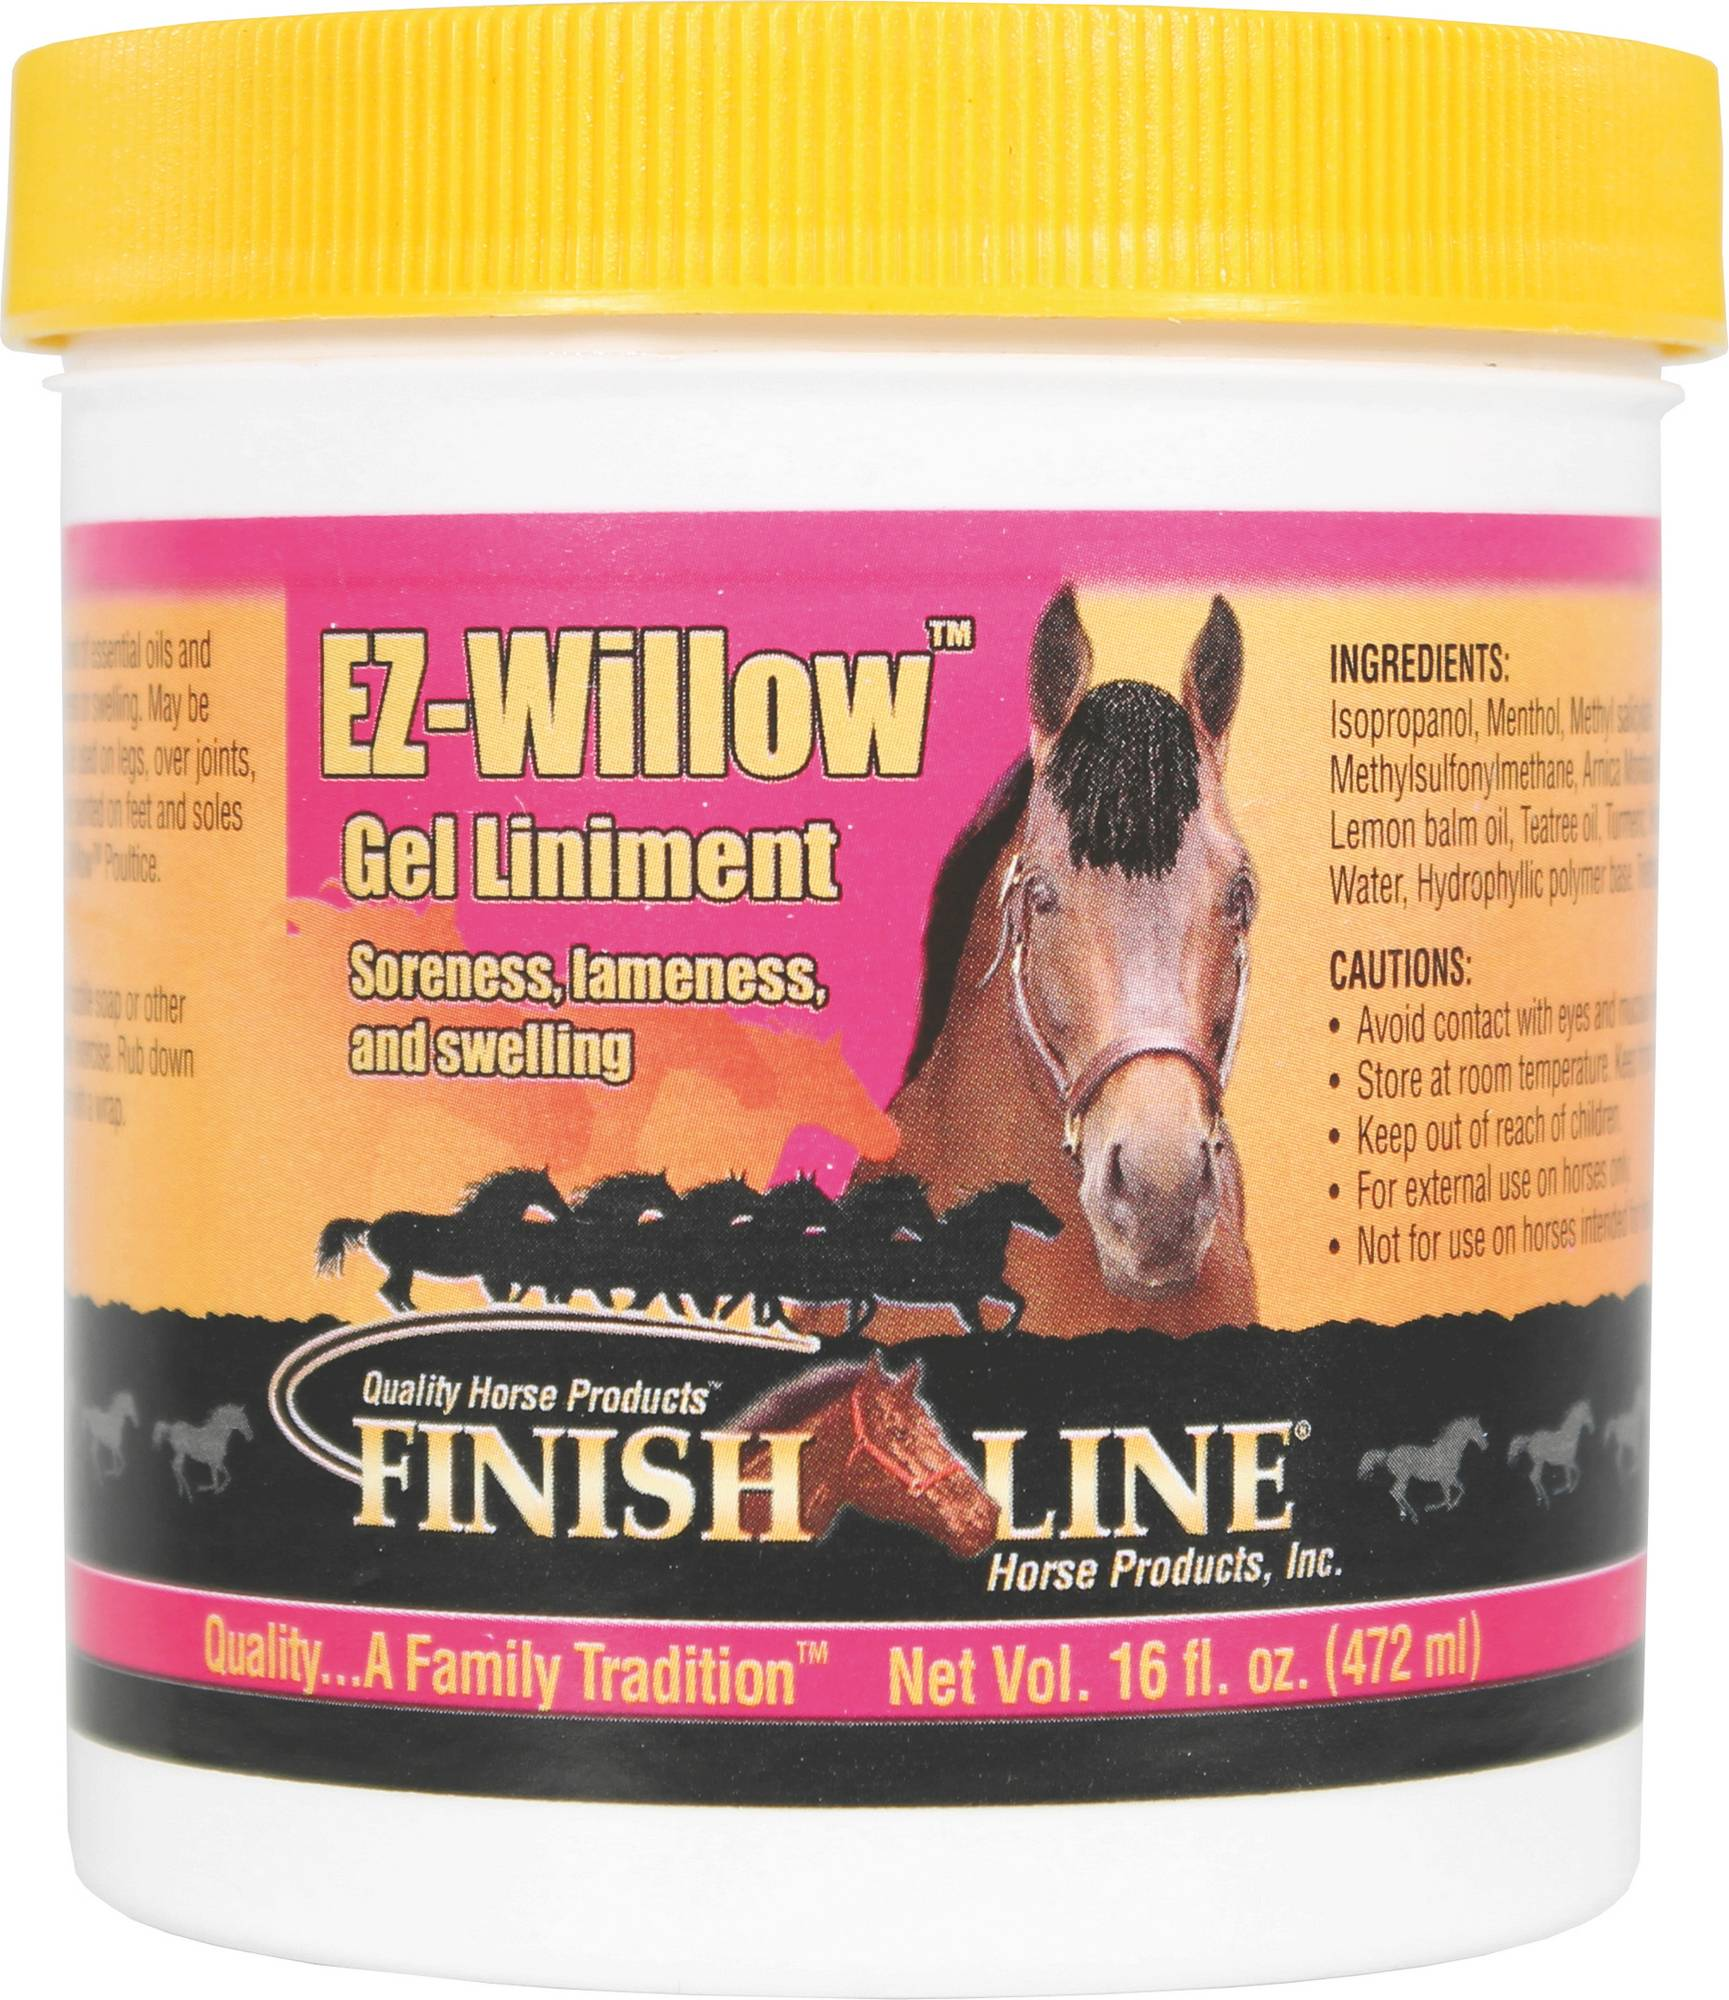 Finish Line Ez-Willow Gel Liniment